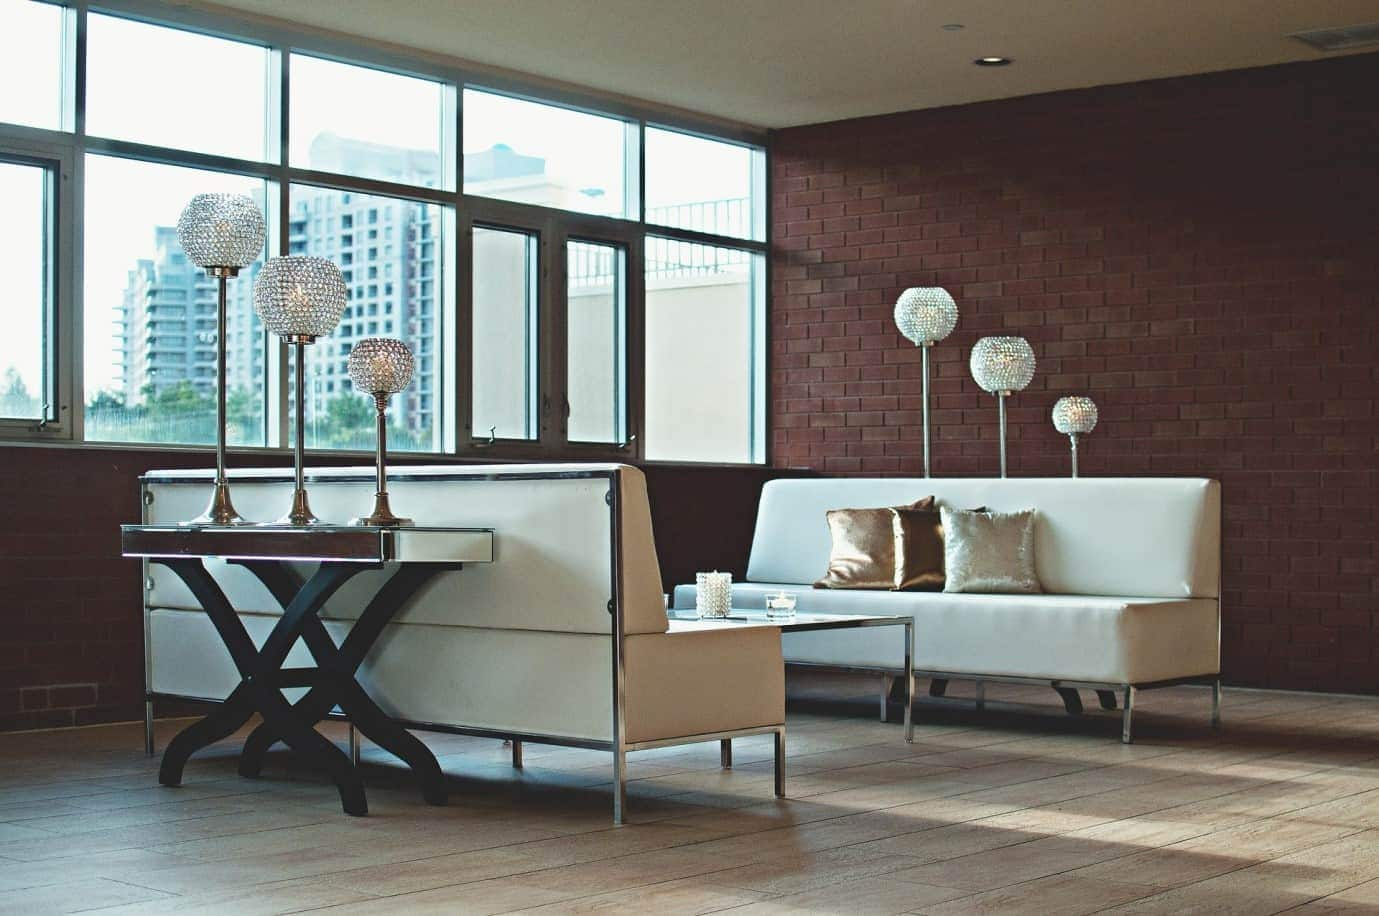 A bright living room with some interesting lamps.